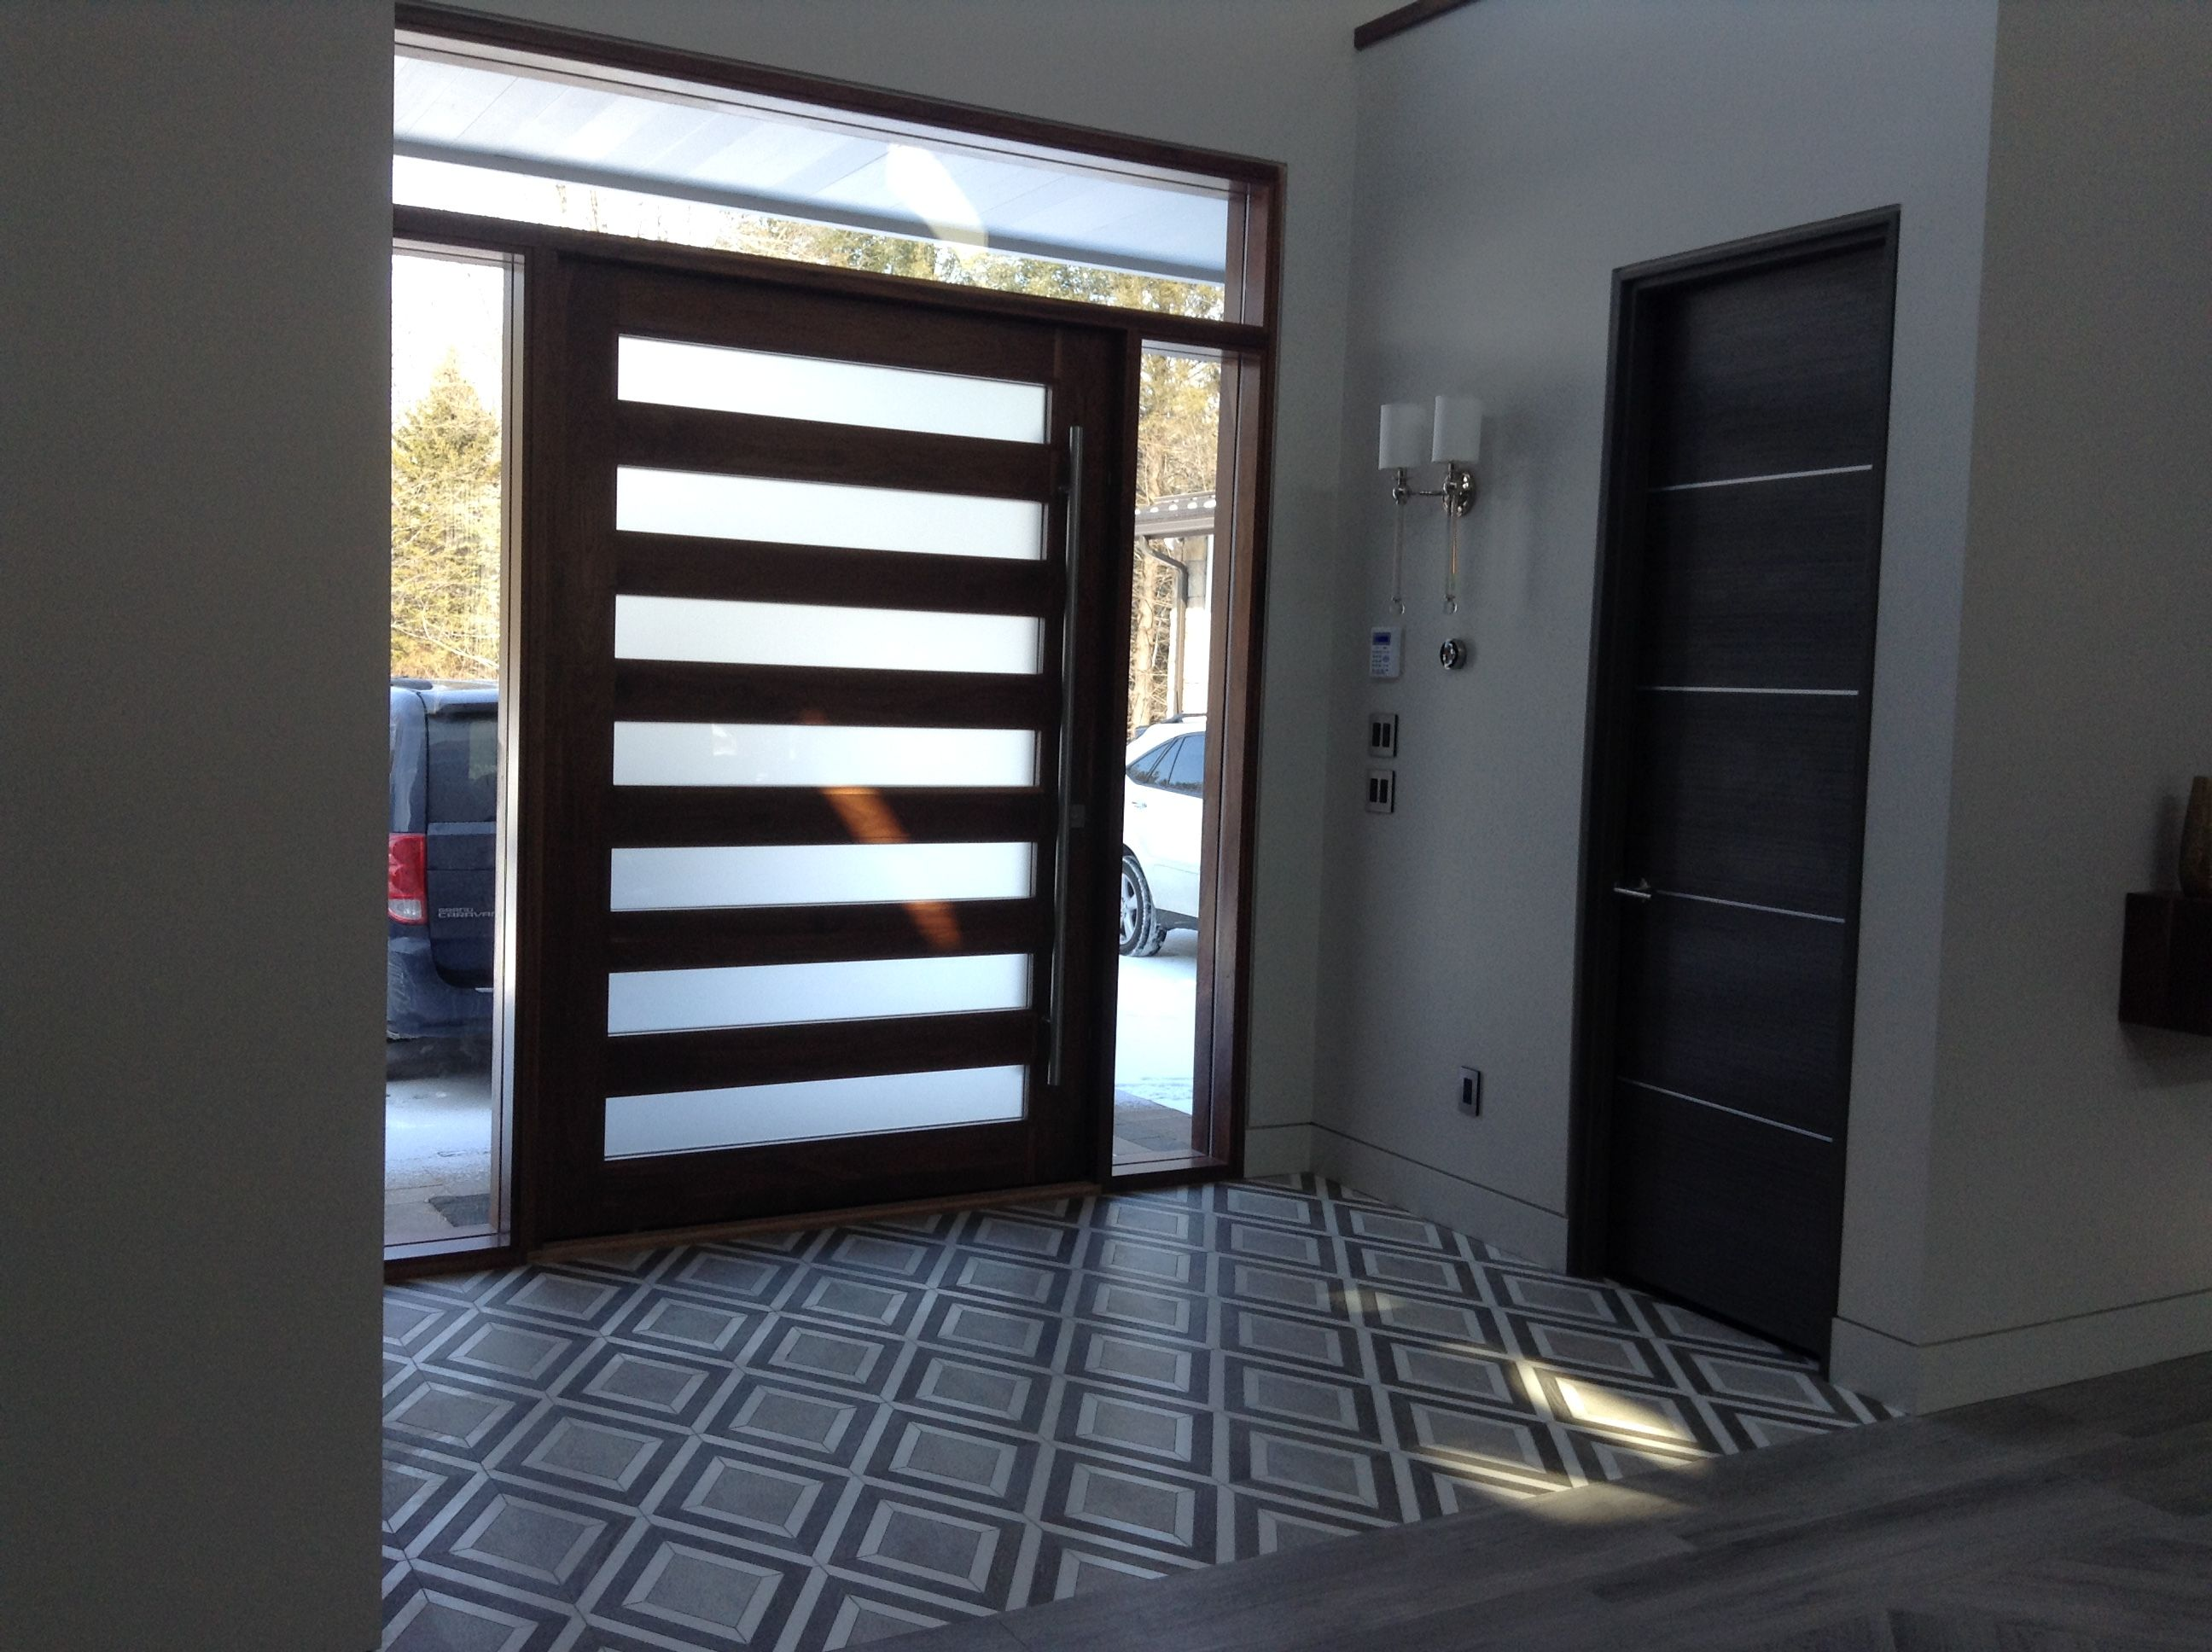 Walnut Pivot Entry Door Foyer Diamond Floor Tile Modern Horizontal